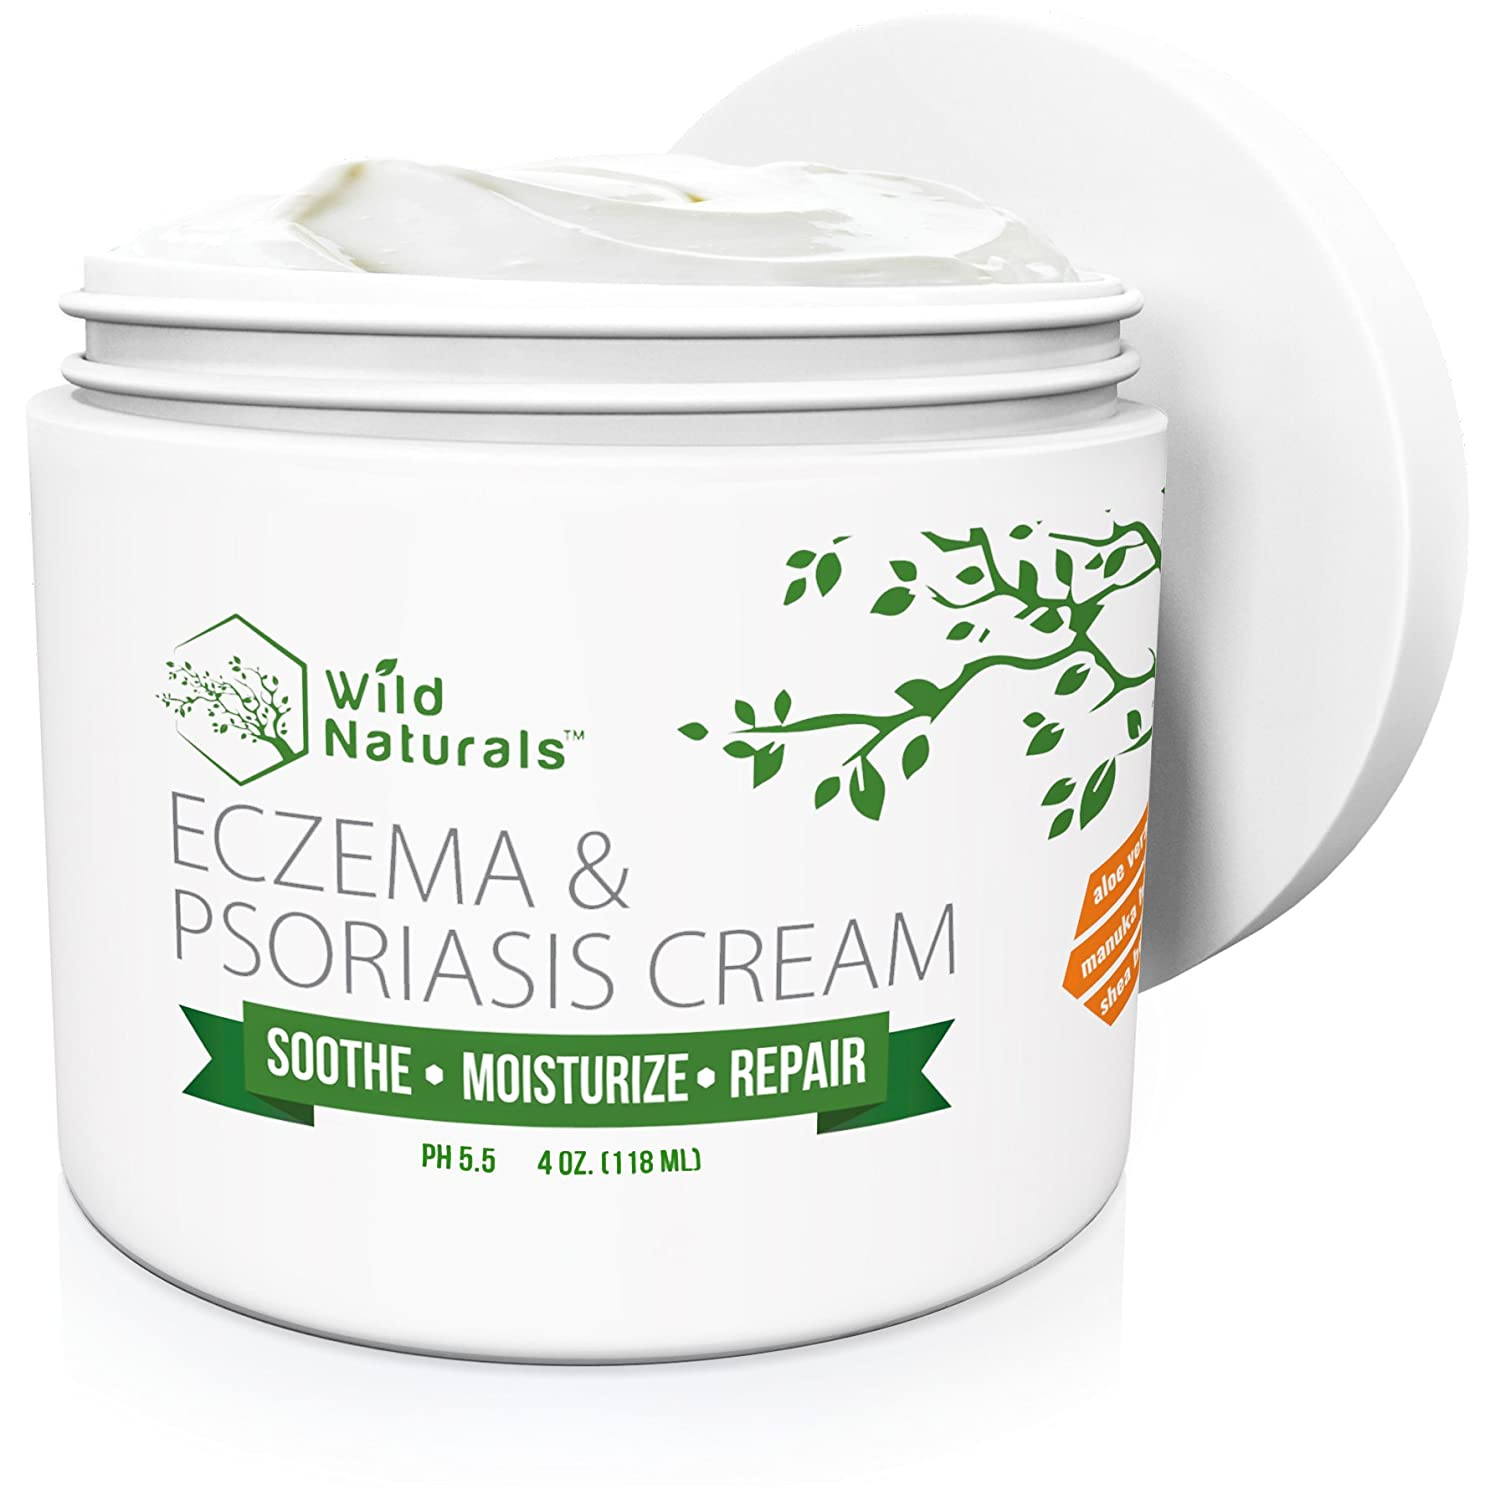 Wild Naturals Eczema Psoriasis Cream - for Dry, Irritated Skin, Itch Relief, Dermatitis, Rosacea, and Shingles. Natural 15-in-1 Formula Promotes Healing and Calms Redness, Rash and Itching Fast